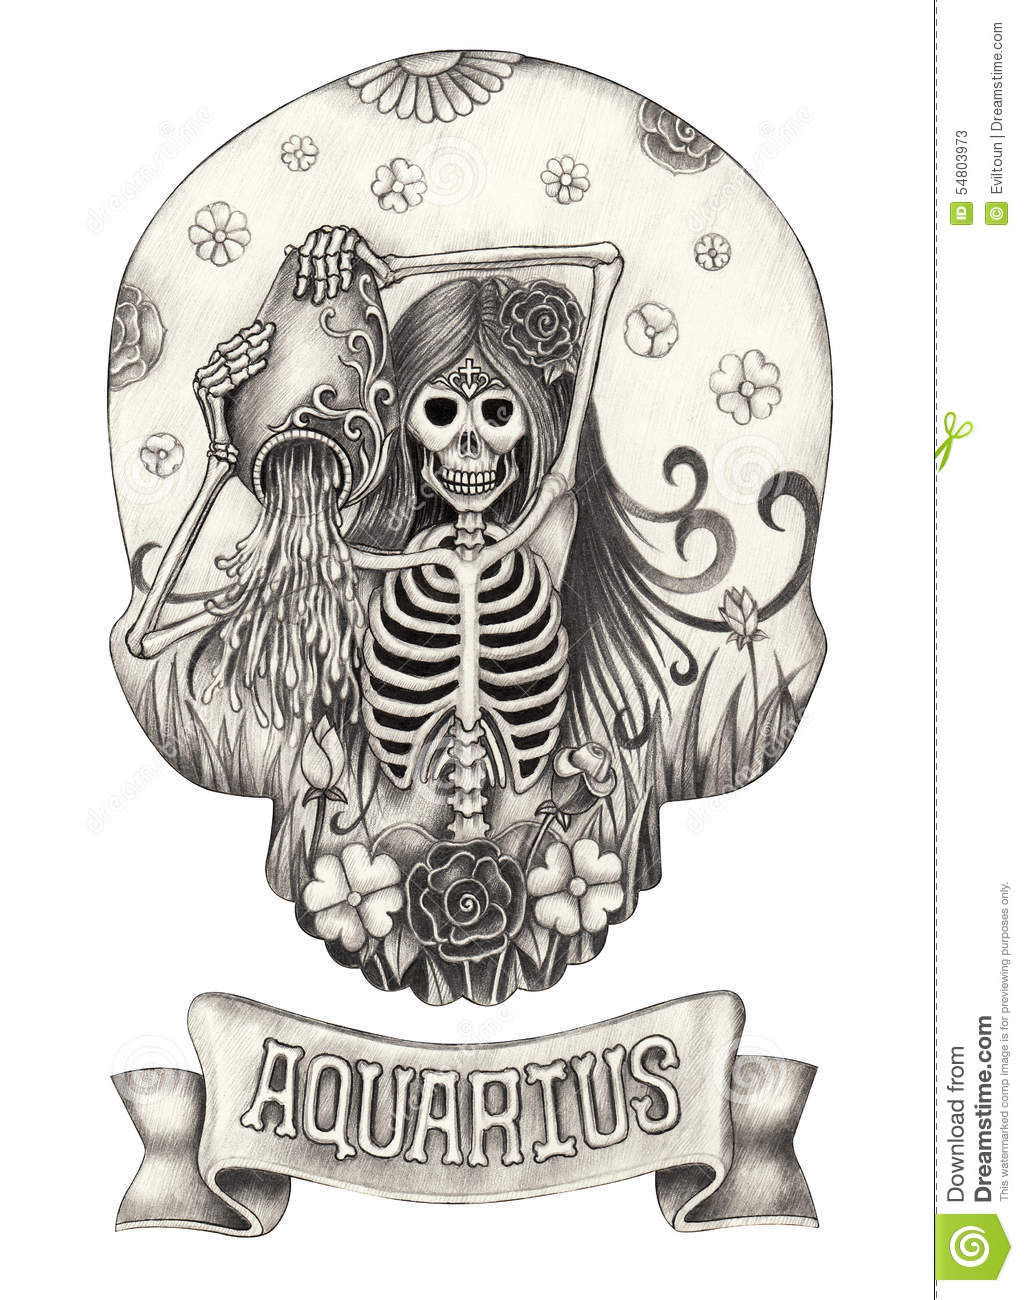 Zodiac Skull Aquarius Hand Drawing On Paper Stock